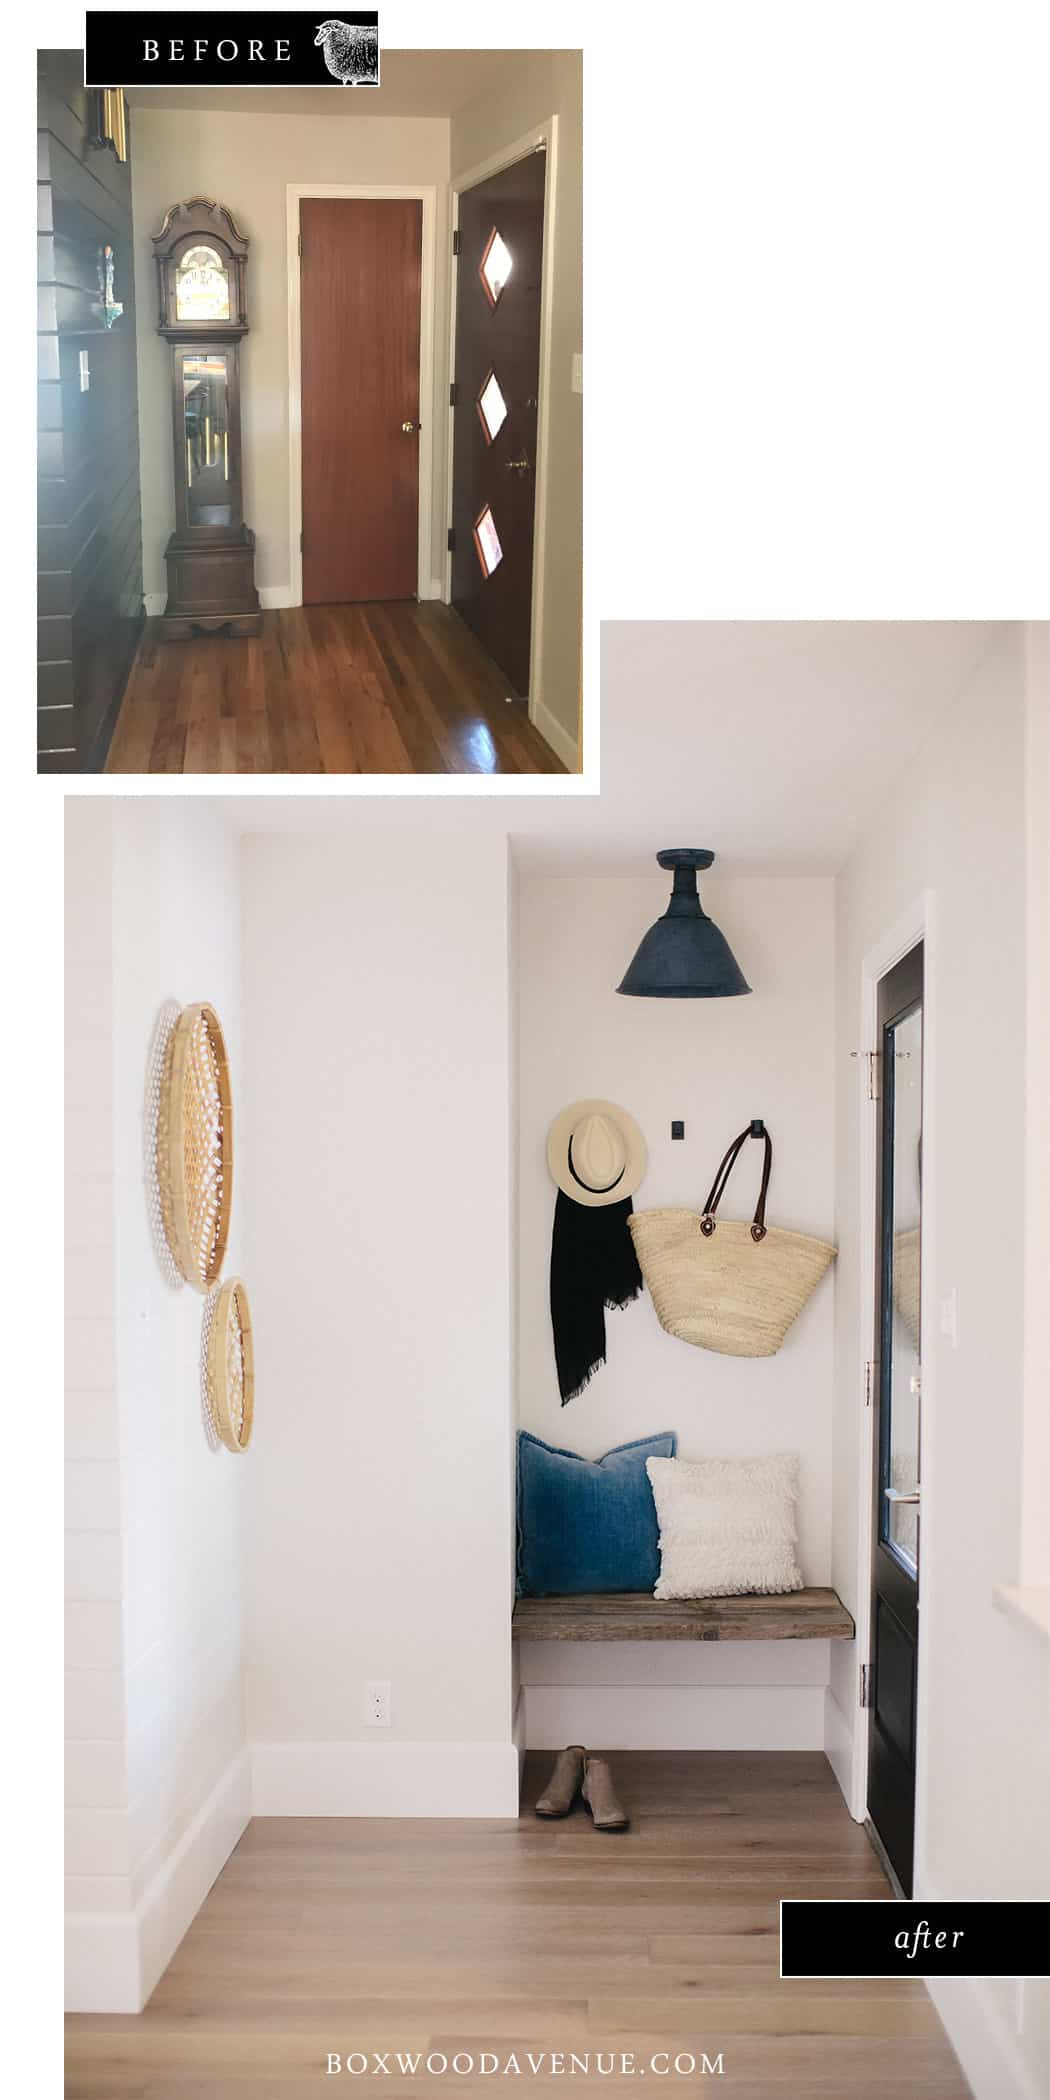 With just an old fence board and a little demo & paint, we turned this entryway into a bright and airy space with a built in bench seat! See how we updated this entryway by getting rid of the coat closet and adding a built in bench!